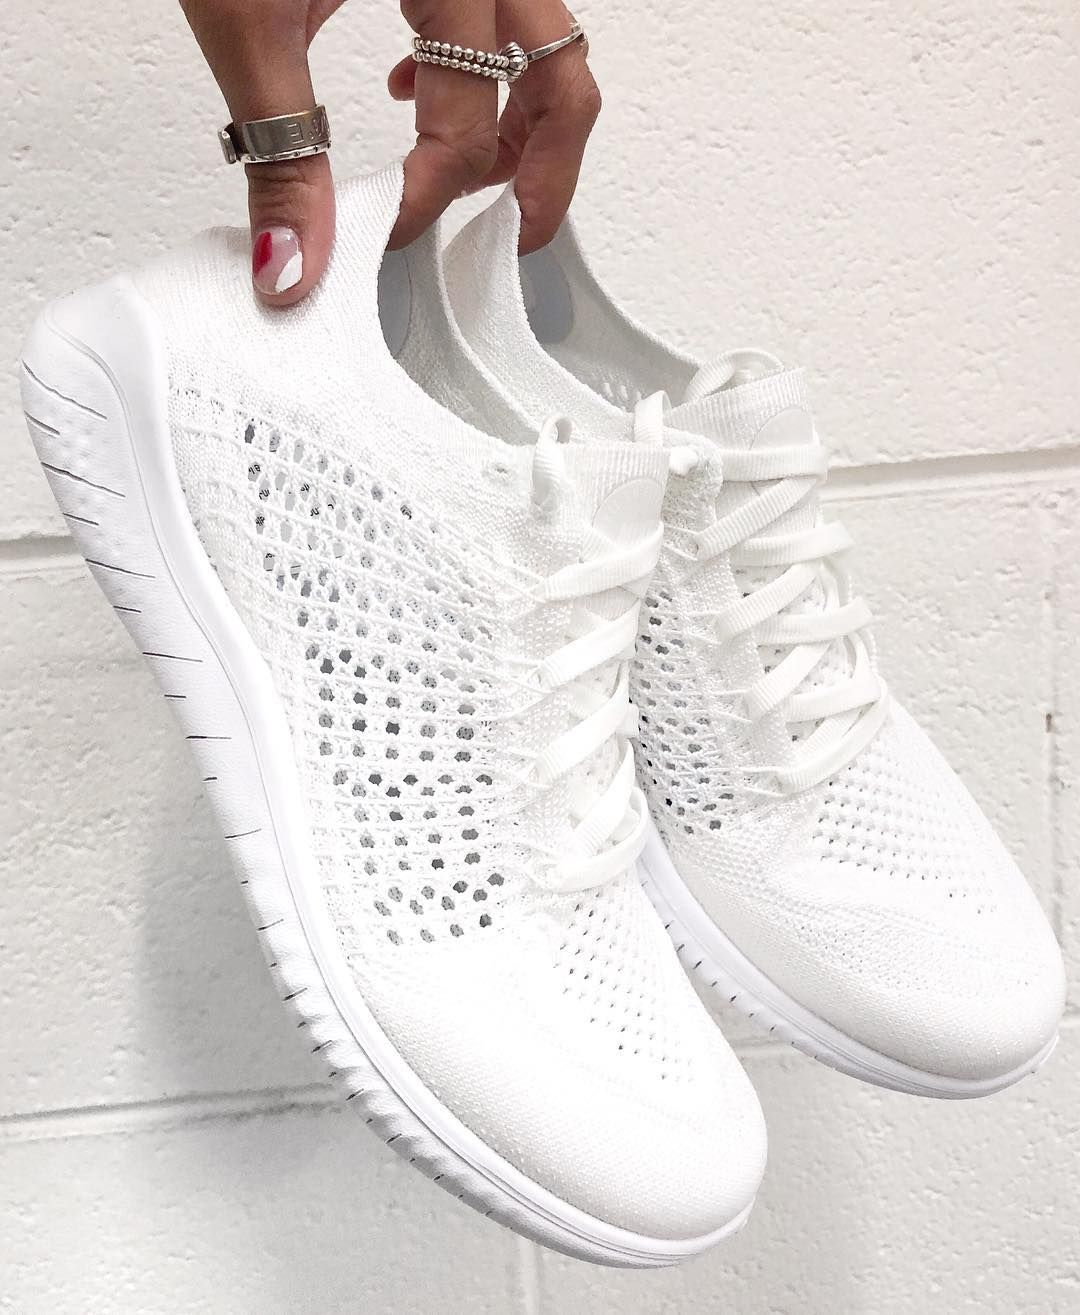 b8310a39ef10 We take a closer look at the stunning new Nike Free RN Flyknit 2018 Women s  Running Shoe in all white. It is the lightest trainer in the Nike Free RN  family ...